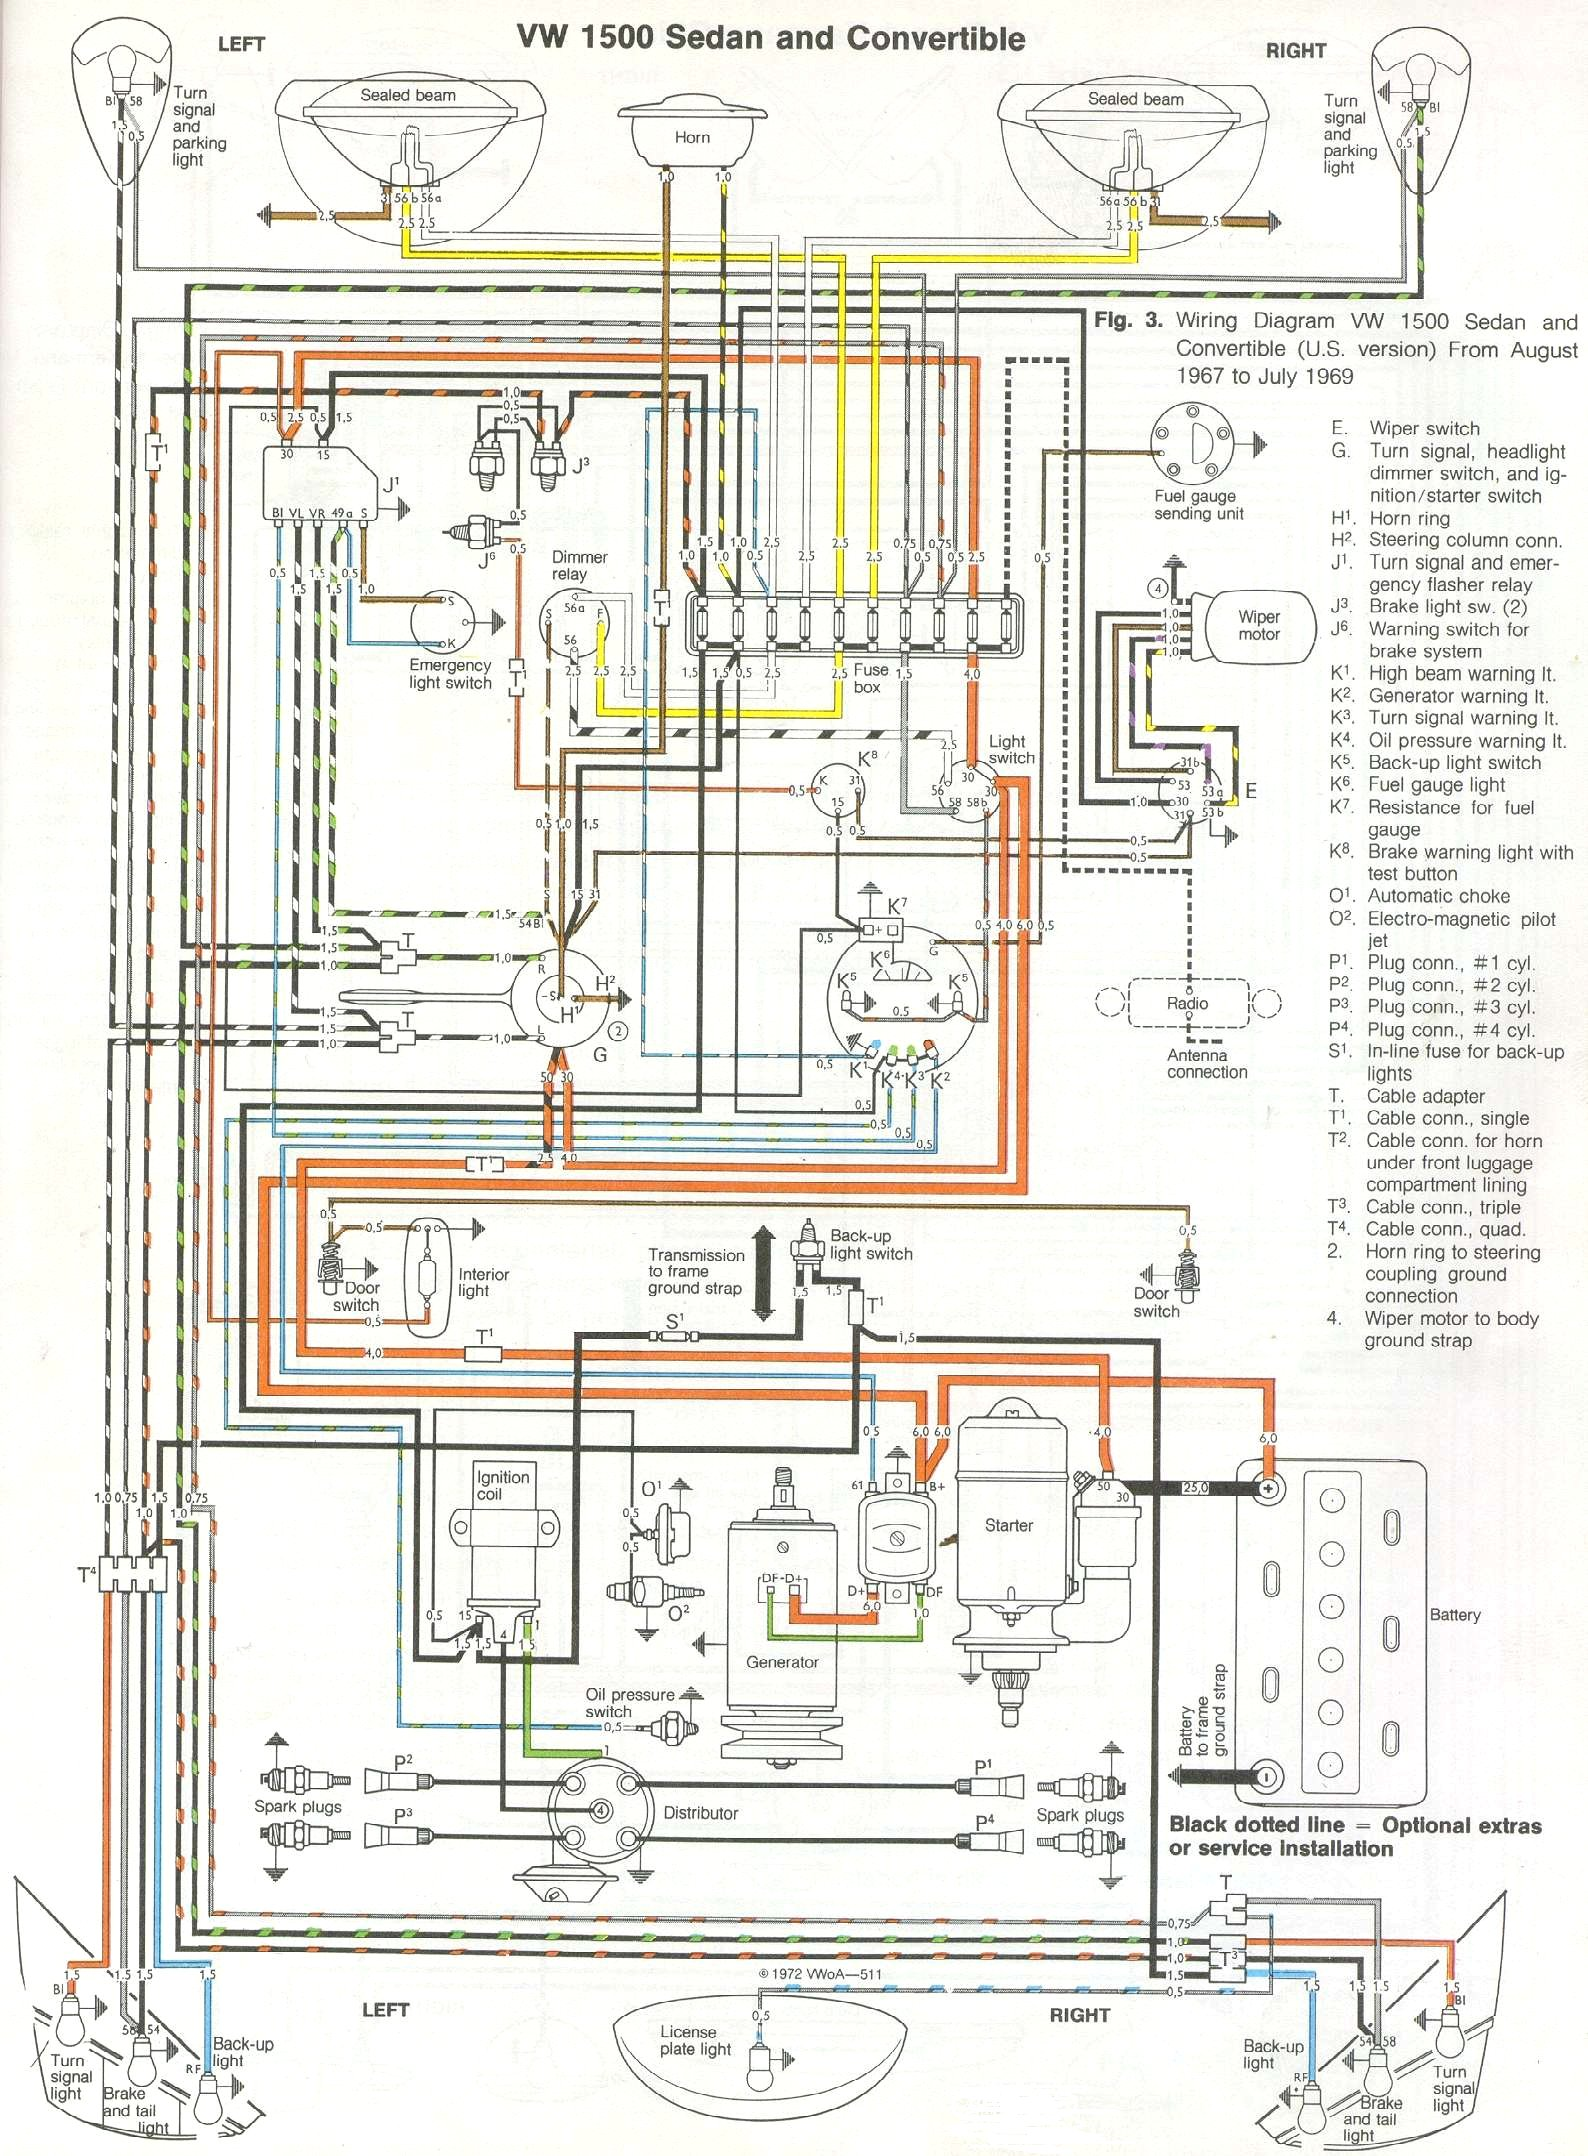 1969 71 Beetle Wiring Diagram Thegoldenbug Com 1966 VW Wiring Diagram 71  Super Beetle Wiring Diagram